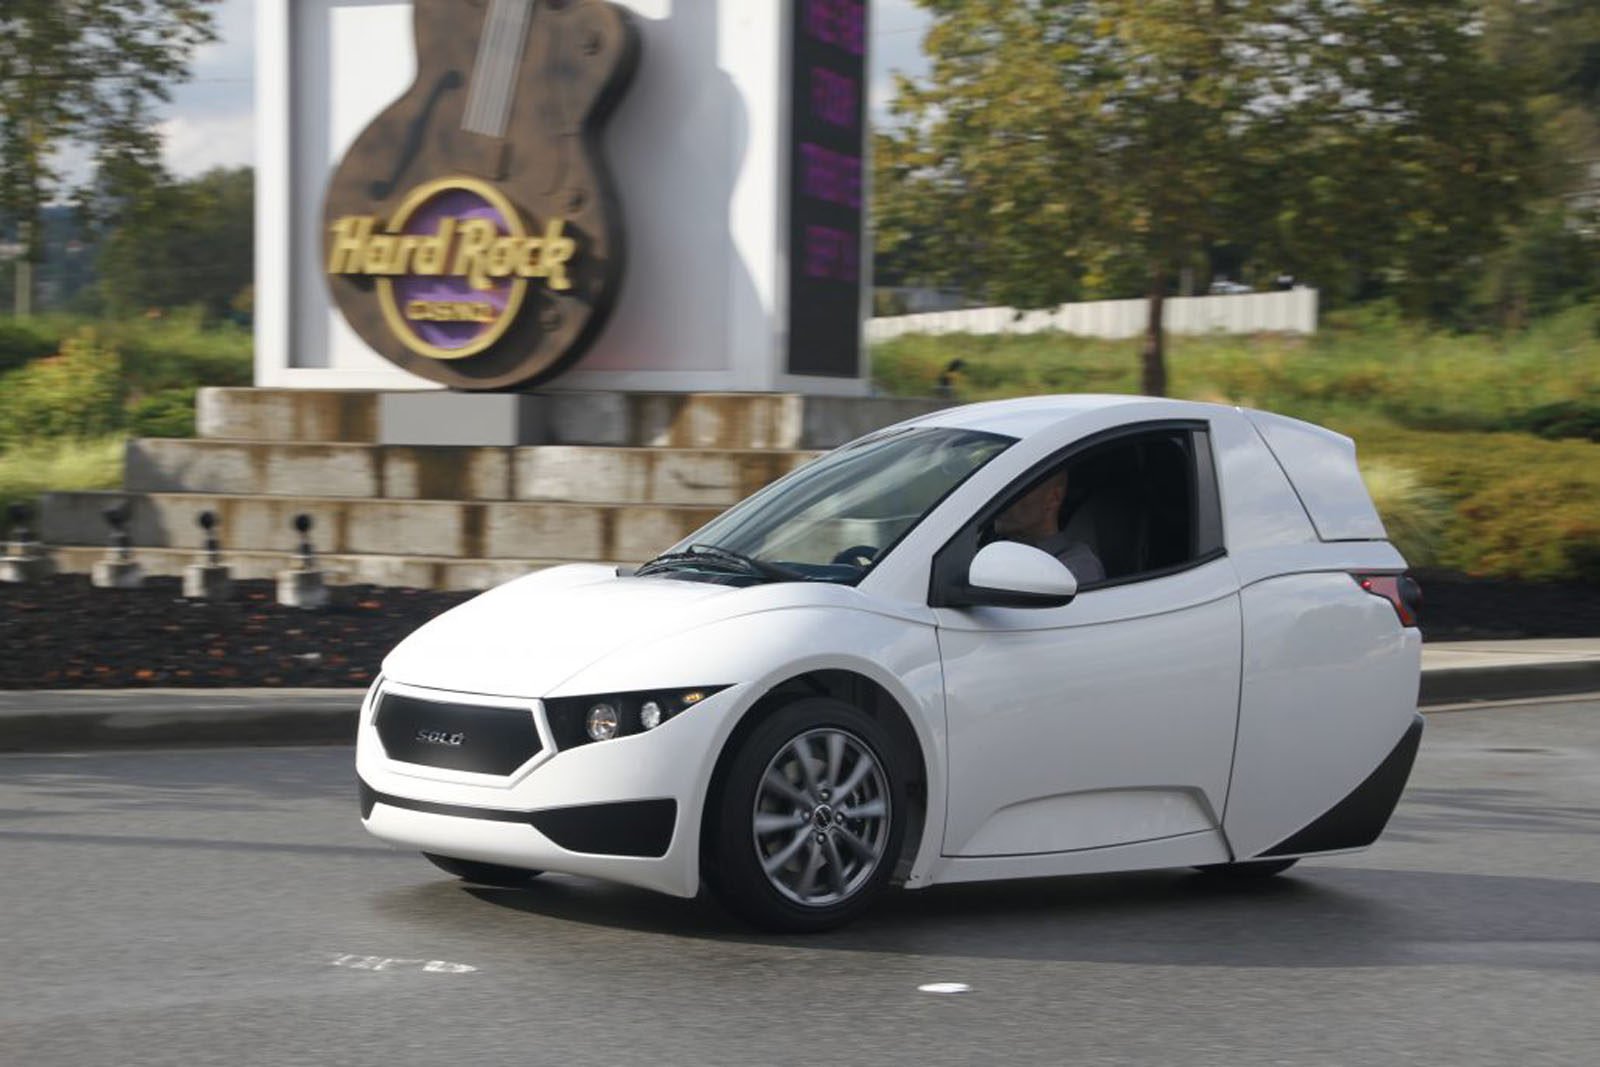 Single Seat 3 Wheel Electric Commuter Car Unveiled